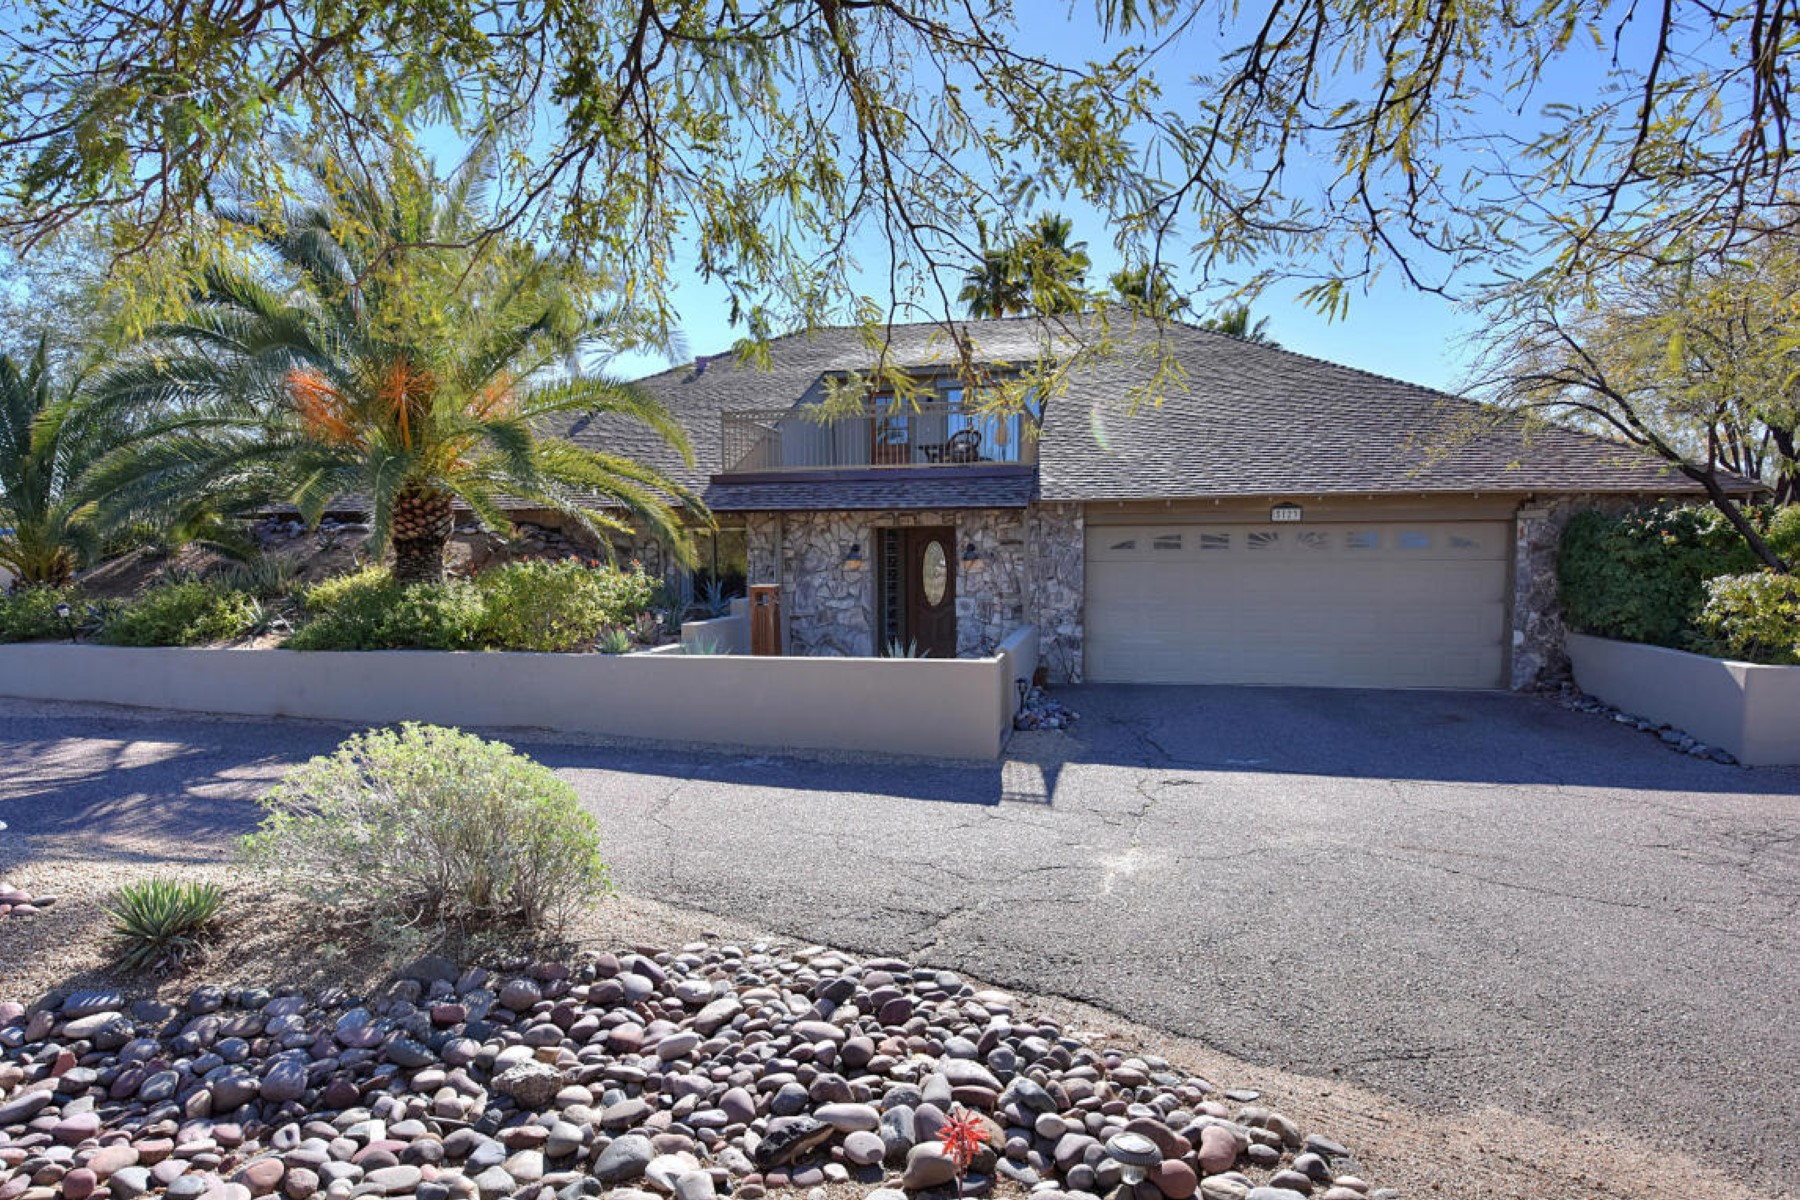 Single Family Home for Sale at Unique and beautifully remodeled home 5123 E Rancho del Oro Dr Cave Creek, Arizona 85331 United States